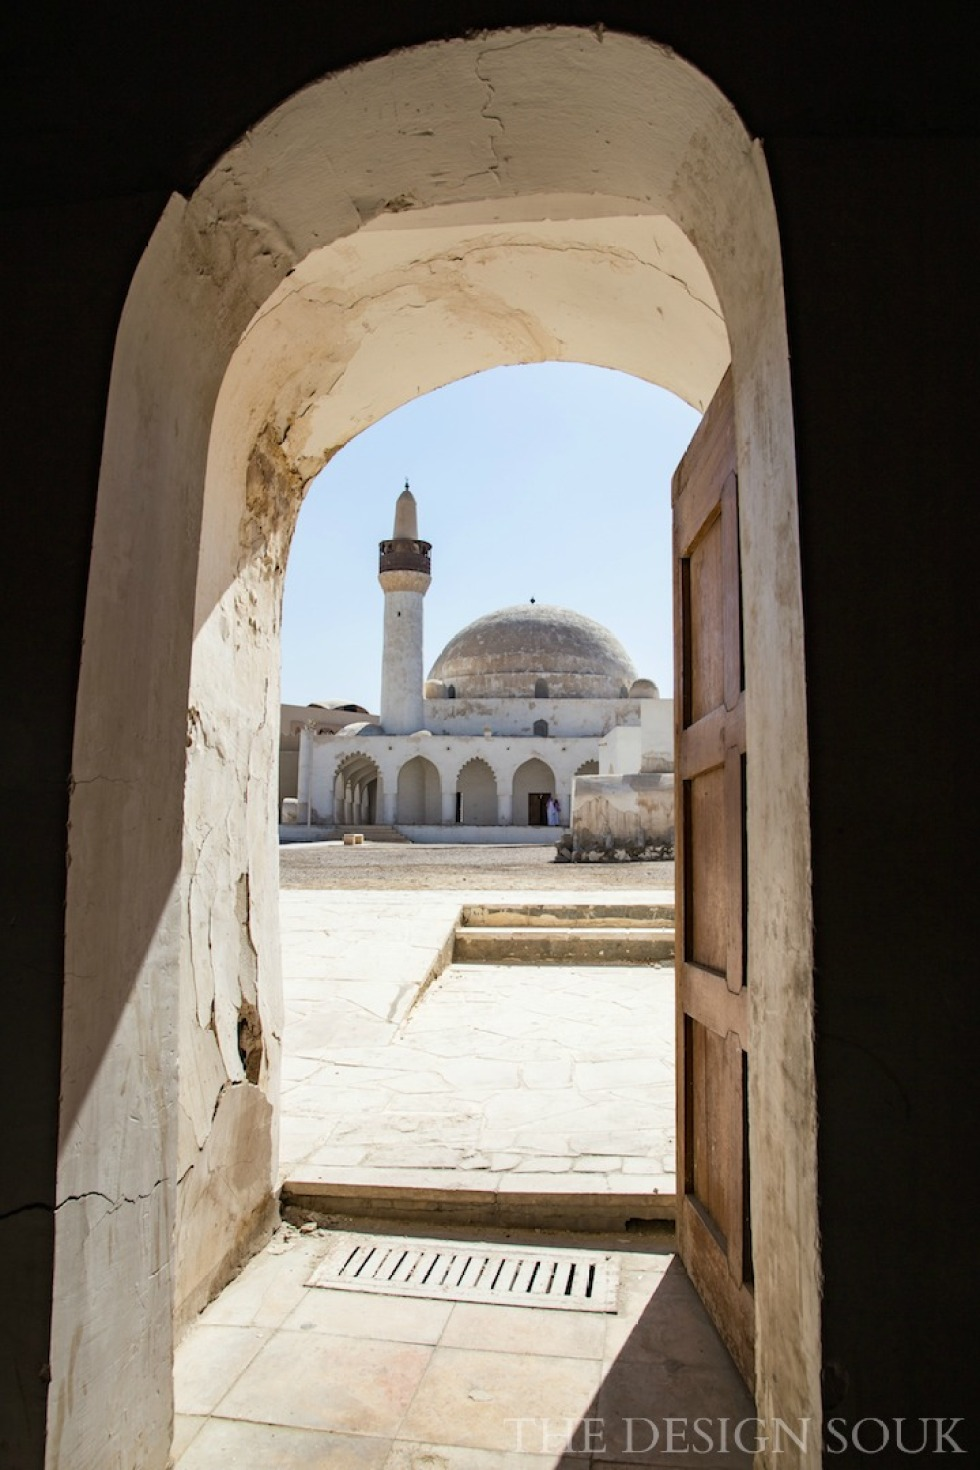 The mosque in Ibrahim Palace